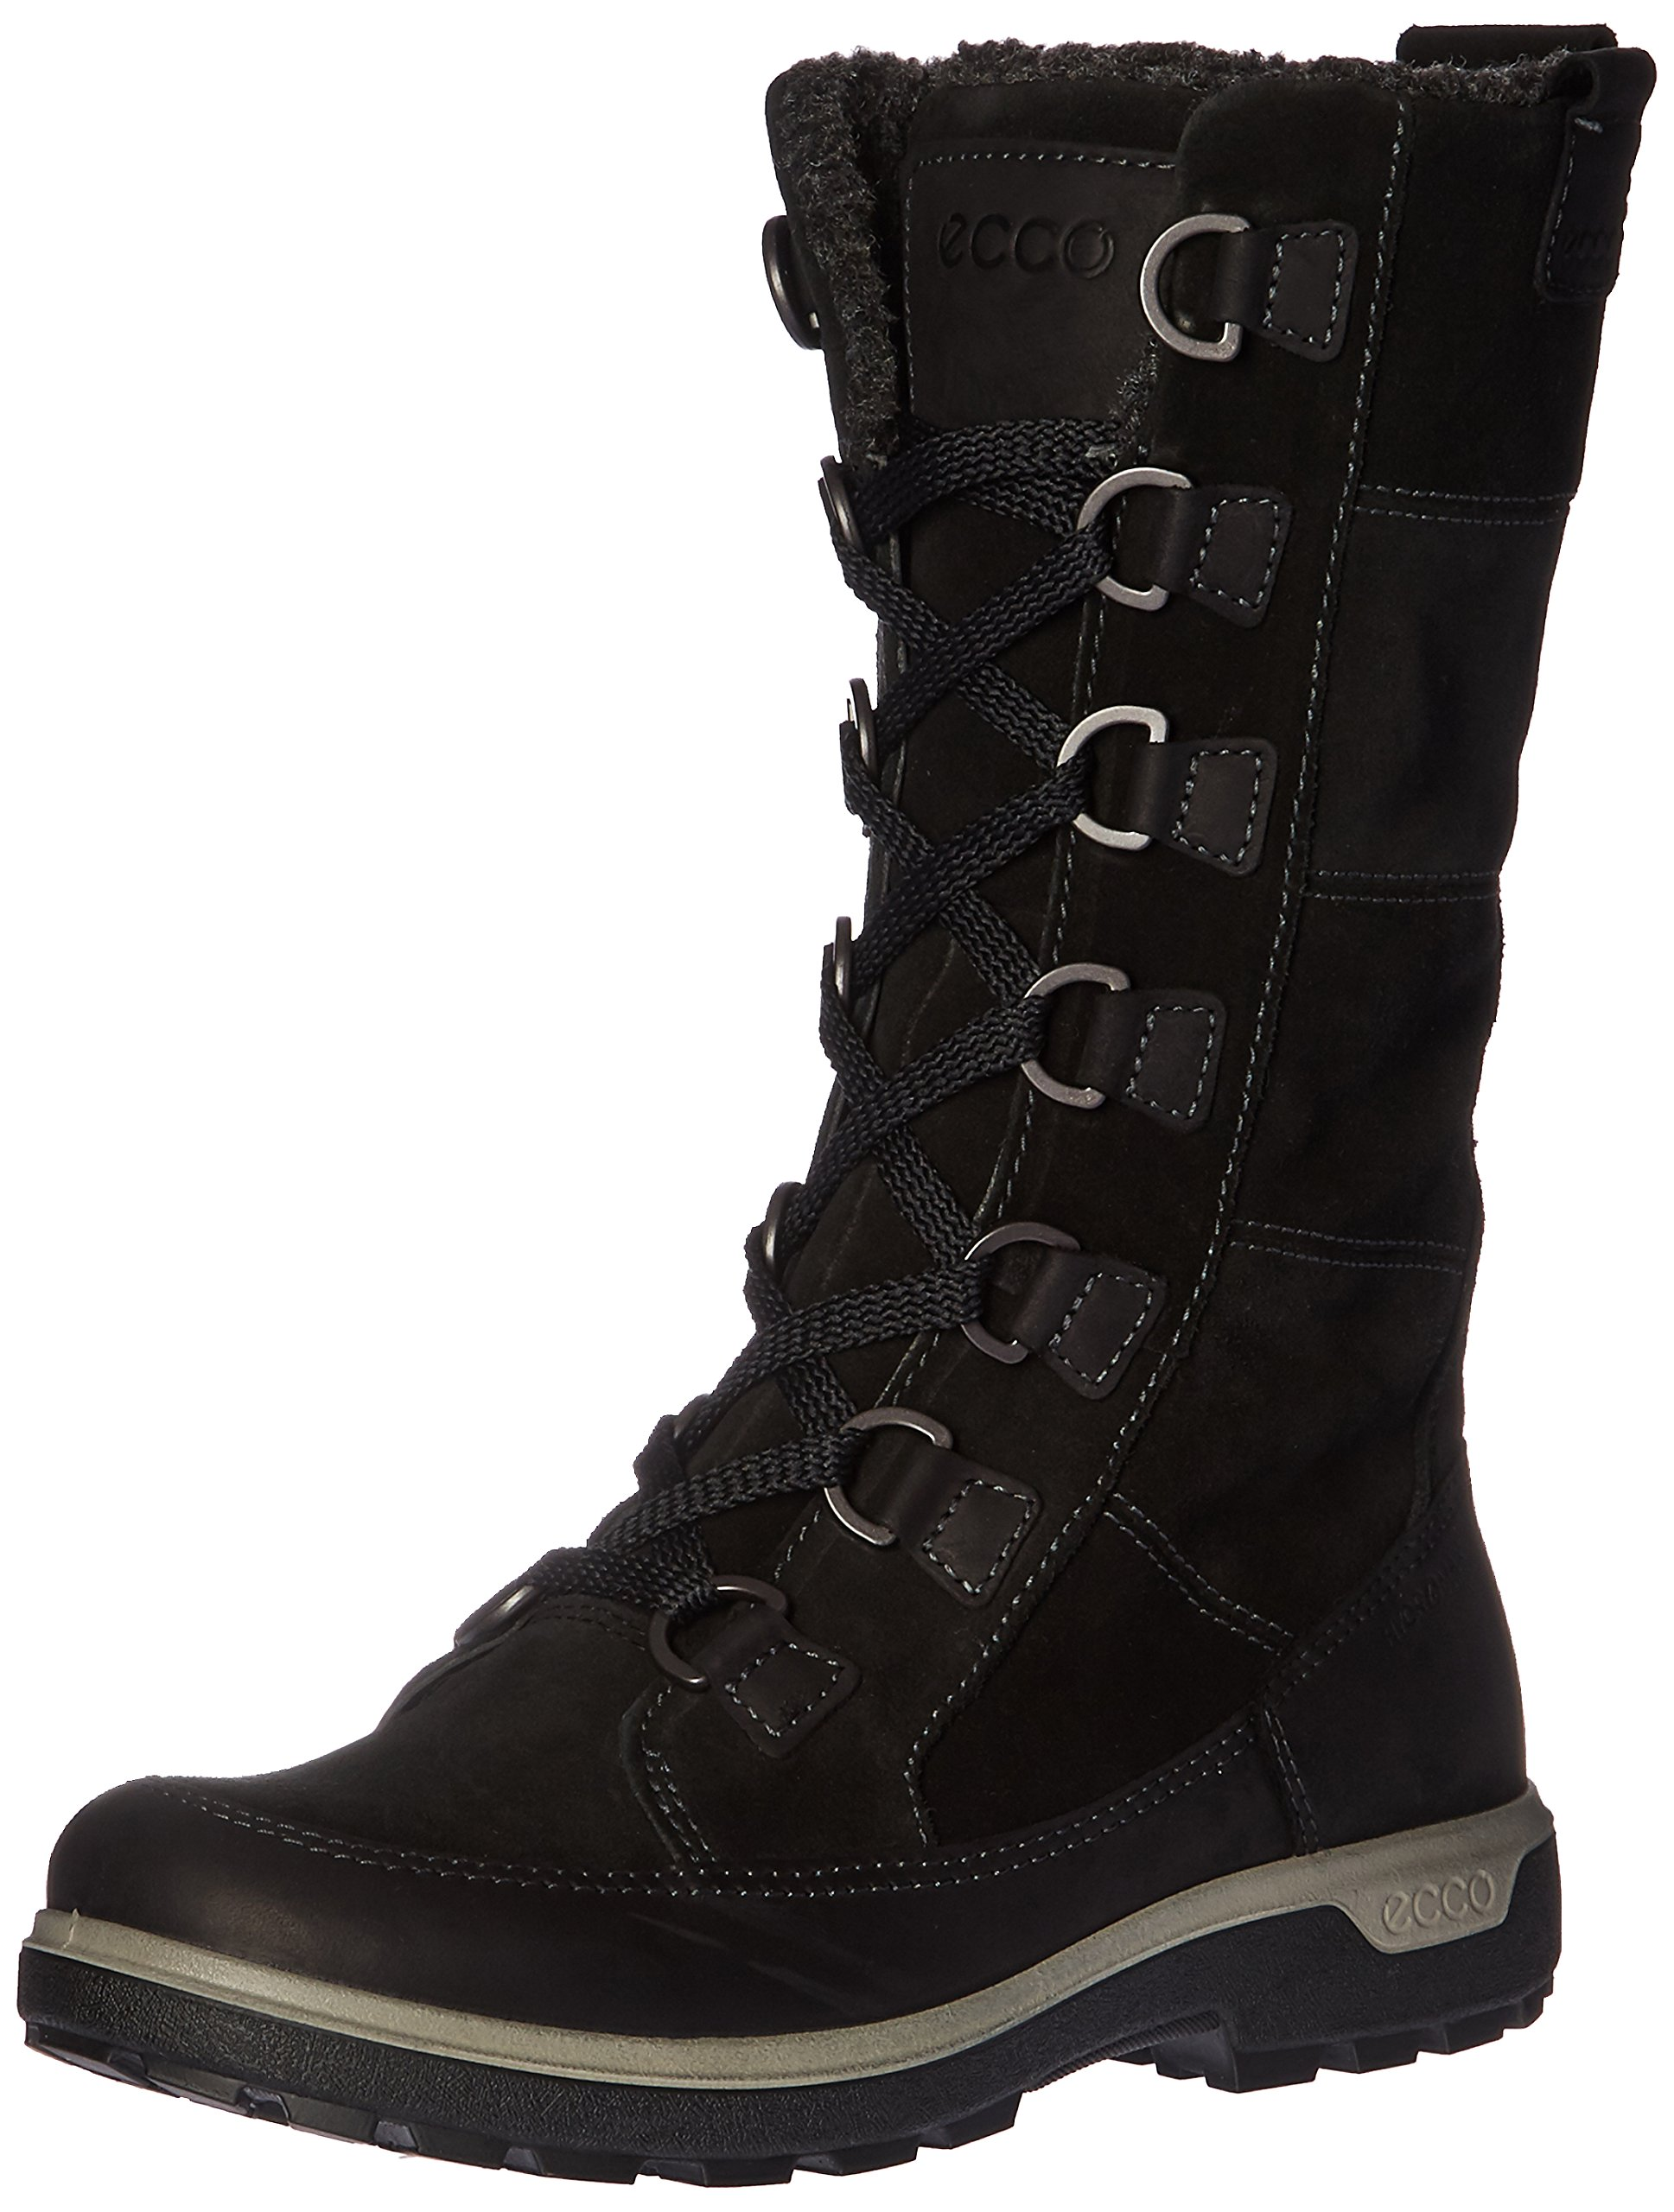 ECCO Women's Gora Tall Boot Hiking Inspired